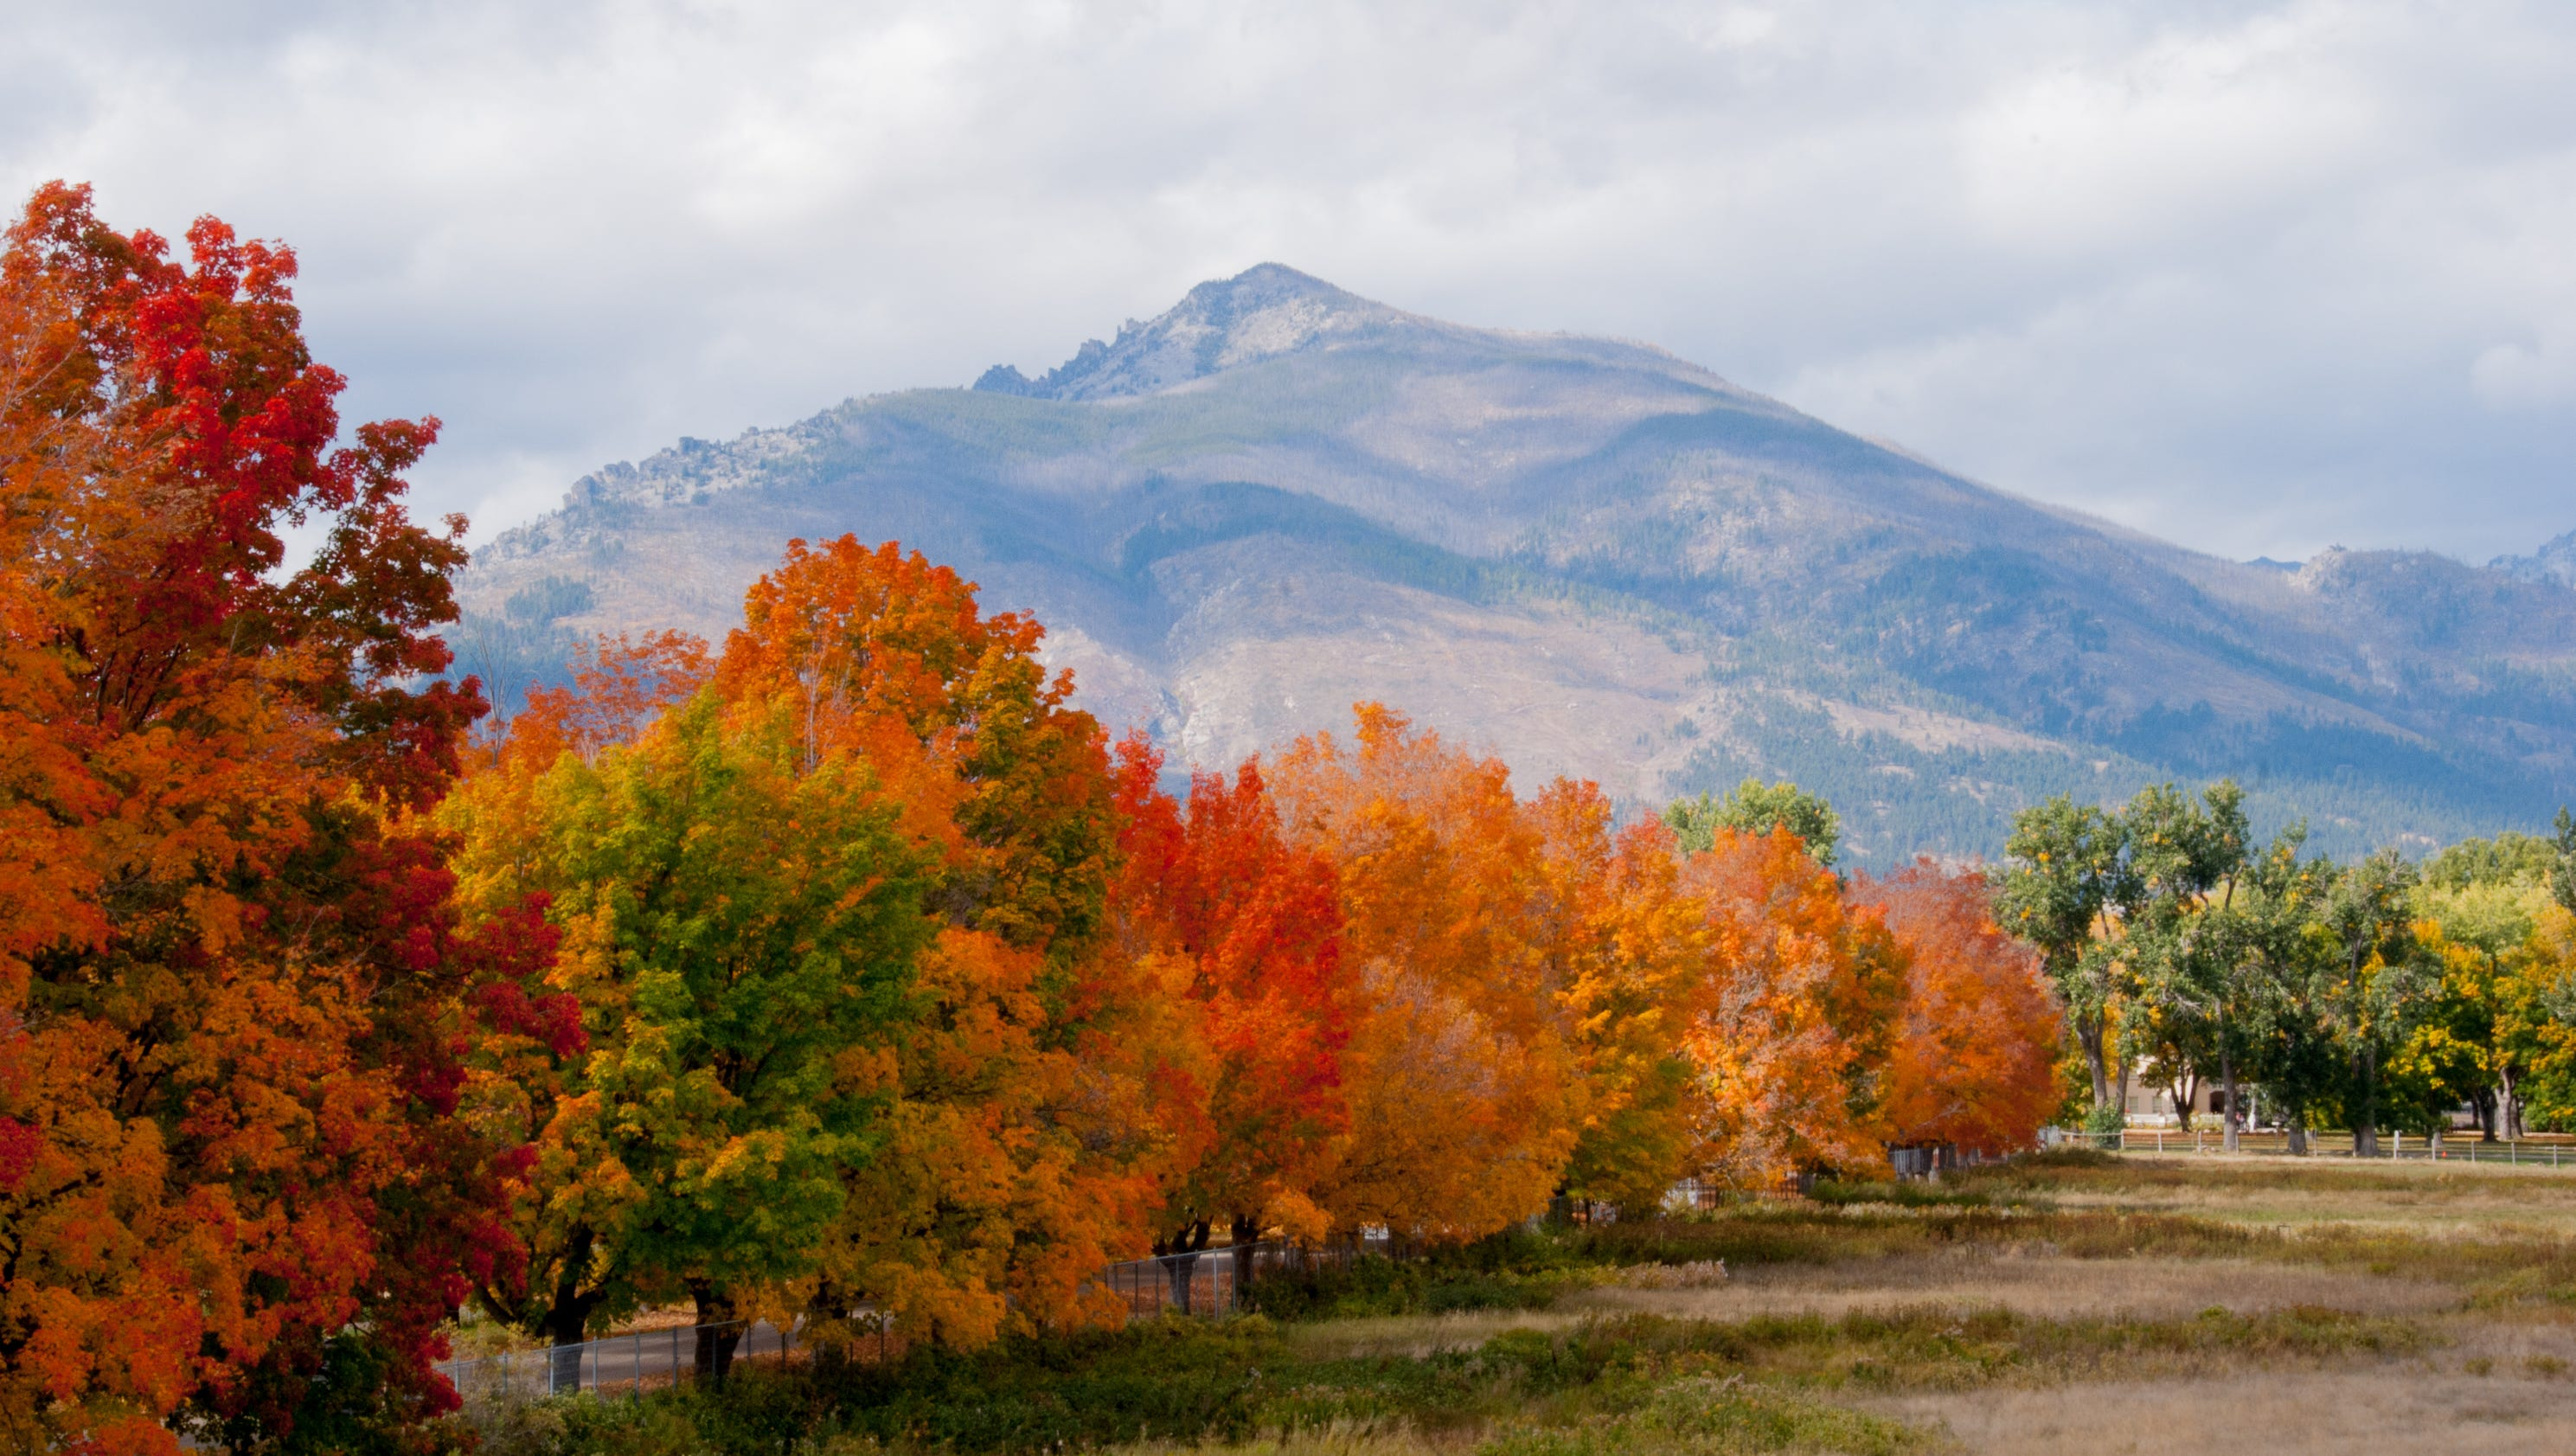 Fall foliage: 10 spots for great leaf peeping